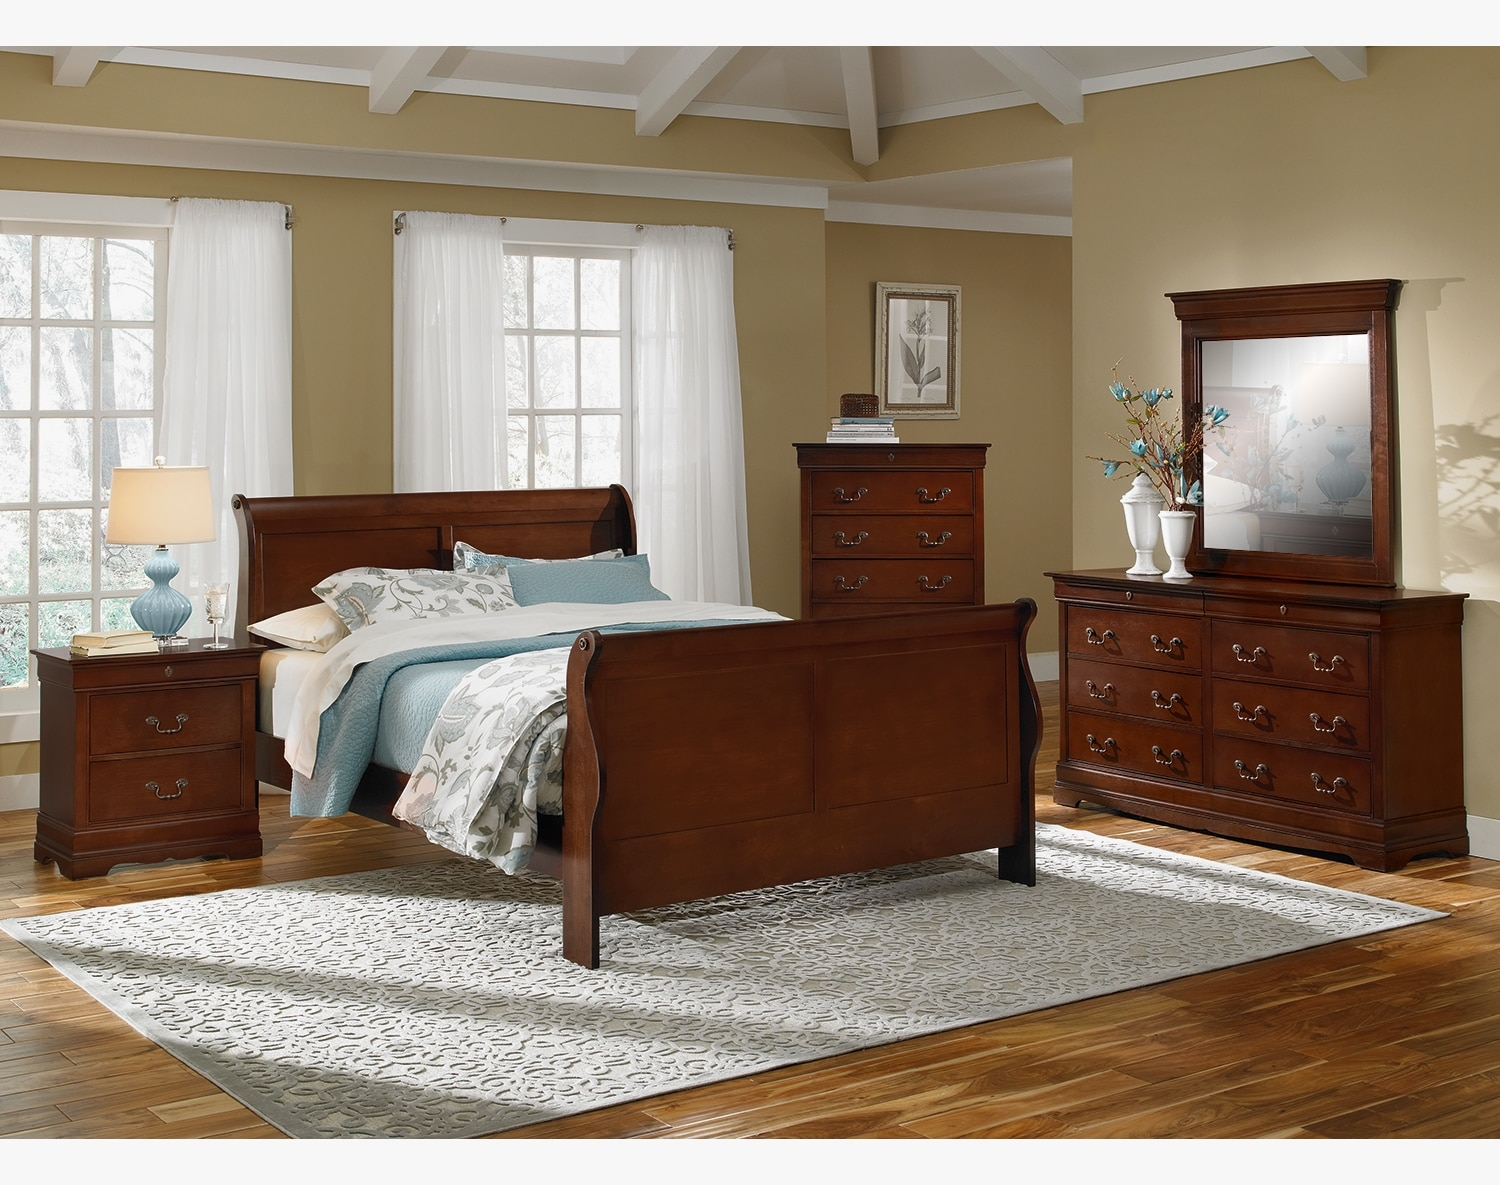 Bedroom Furniture - The Avignon Cherry Collection - Queen Bed